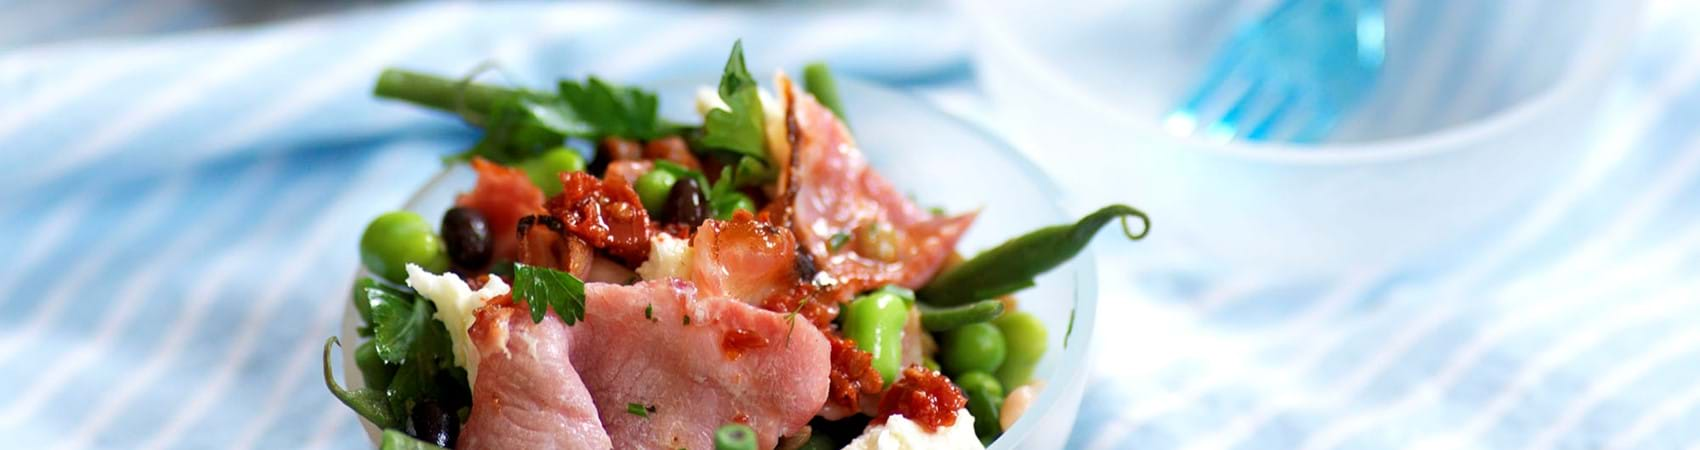 Bacon Salad With Beans And Herbs